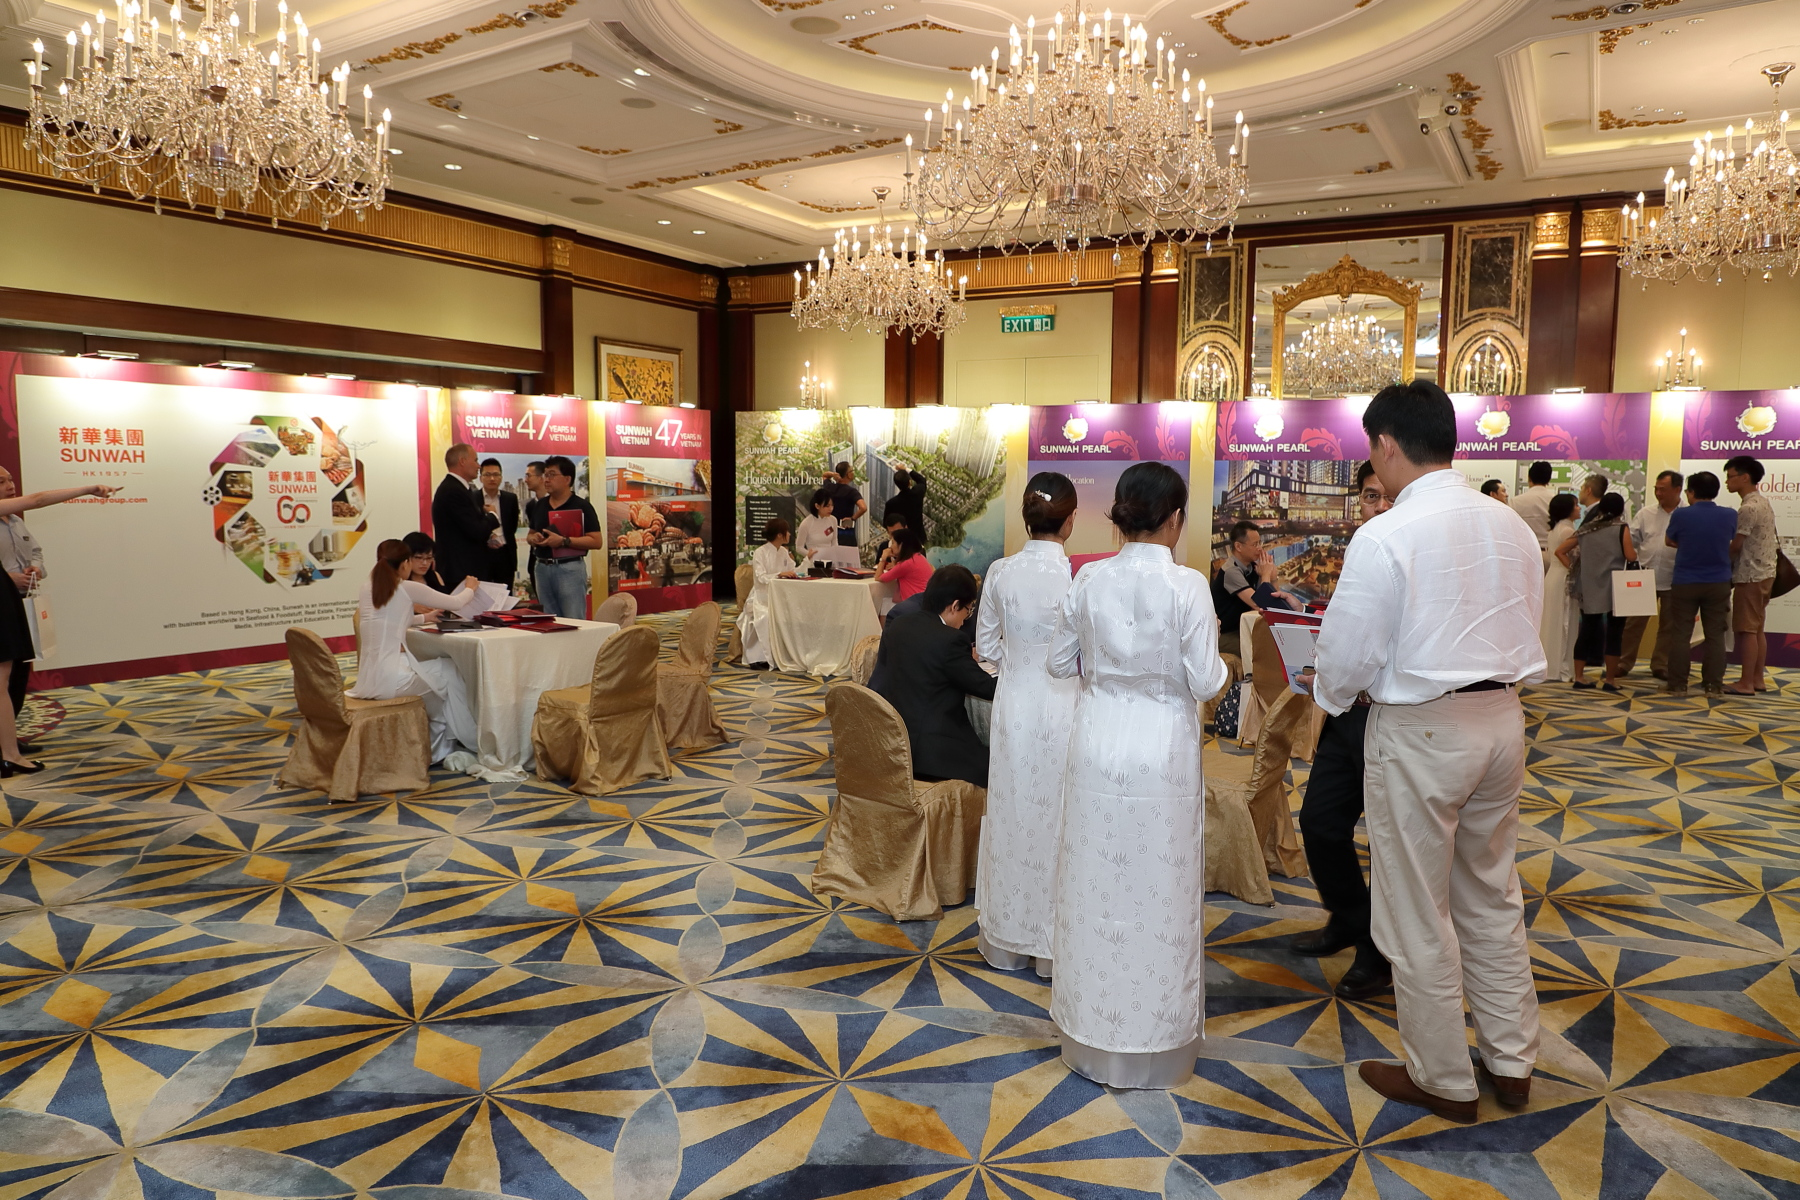 More than 200 guests attended the Sunwah Pearl Project Launch Ceremony in Hong Kong